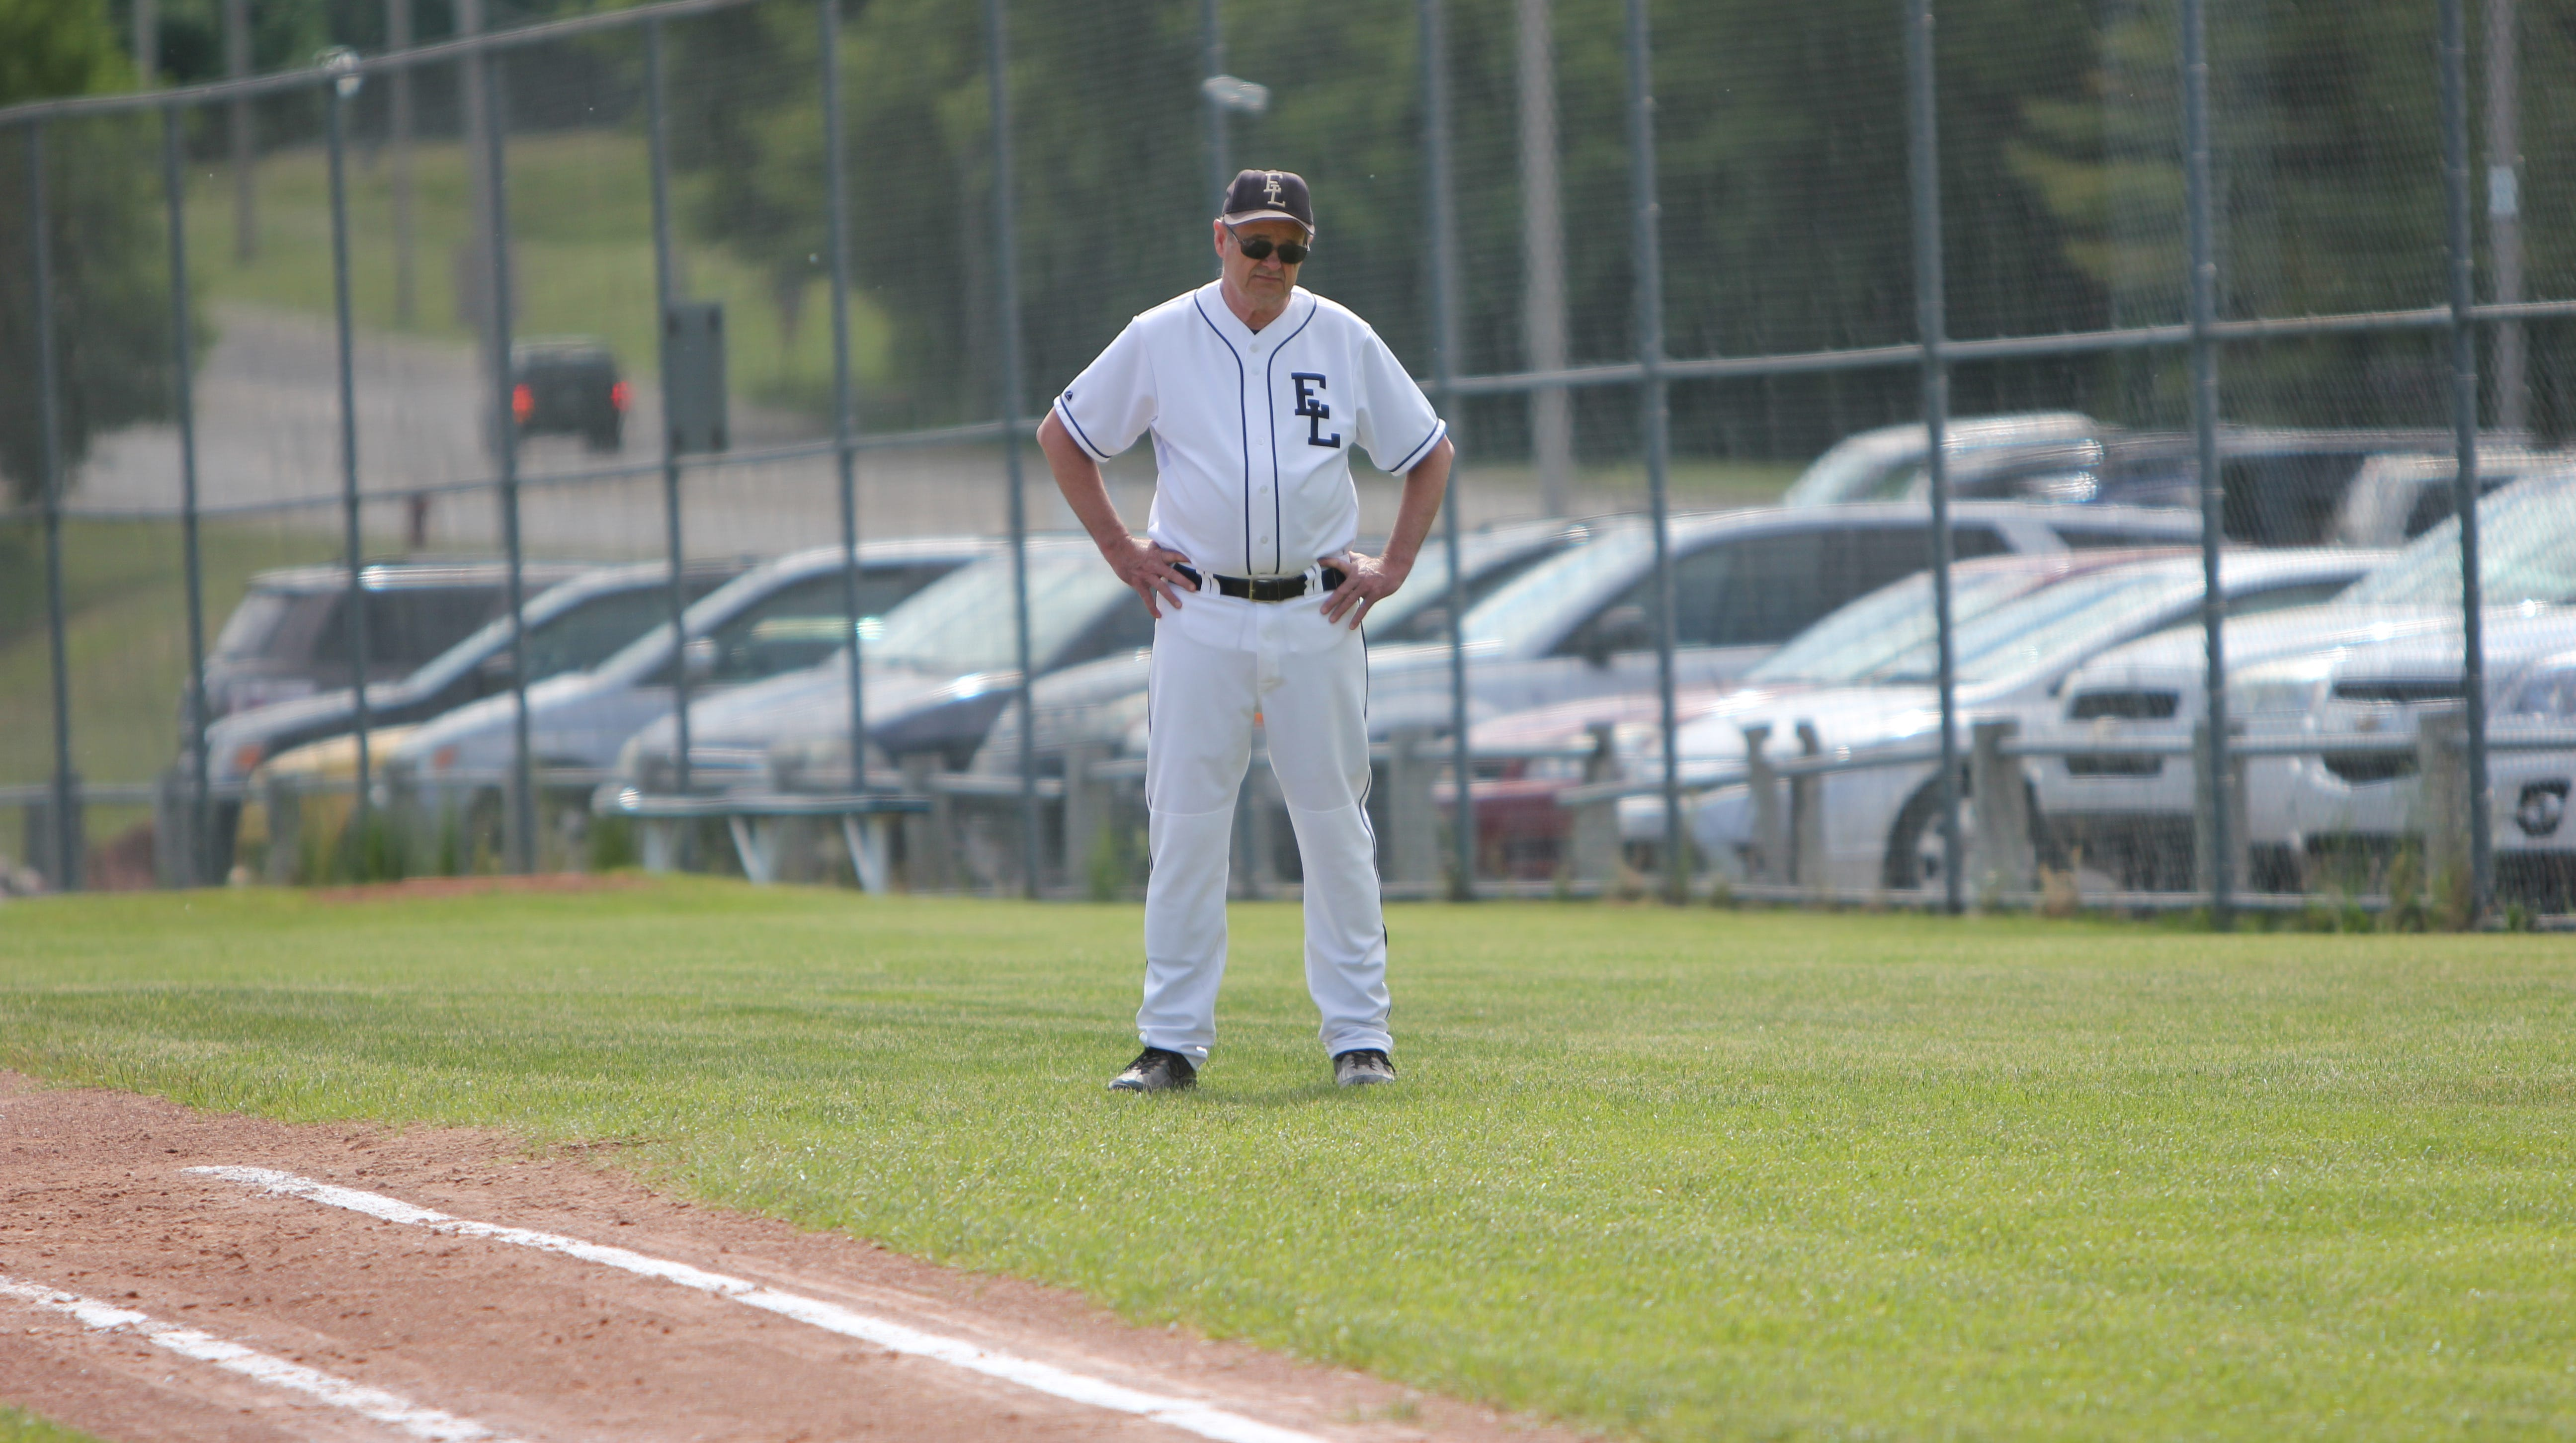 East Lansing High School assistant baseball coach dies after throwing batting practice